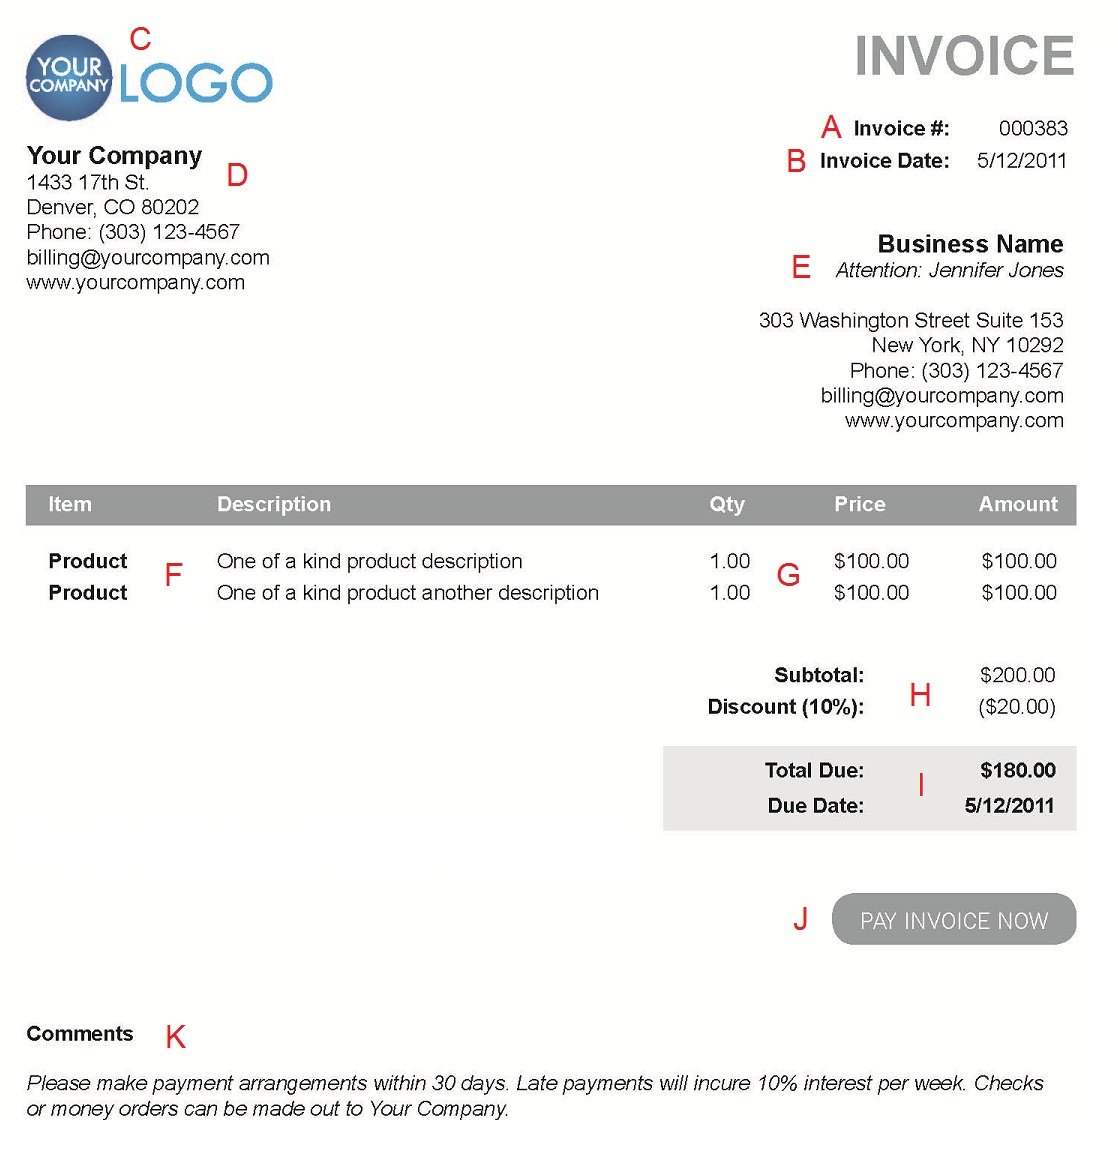 Hucareus  Nice The  Different Sections Of An Electronic Payment Invoice With Engaging A  With Captivating  Below Factory Invoice Also Canada Custom Invoice In Addition Invoice Outline And Contractor Invoice Example As Well As Wawf Invoice Additionally Simple Invoice Template Free From Paysimplecom With Hucareus  Engaging The  Different Sections Of An Electronic Payment Invoice With Captivating A  And Nice  Below Factory Invoice Also Canada Custom Invoice In Addition Invoice Outline From Paysimplecom